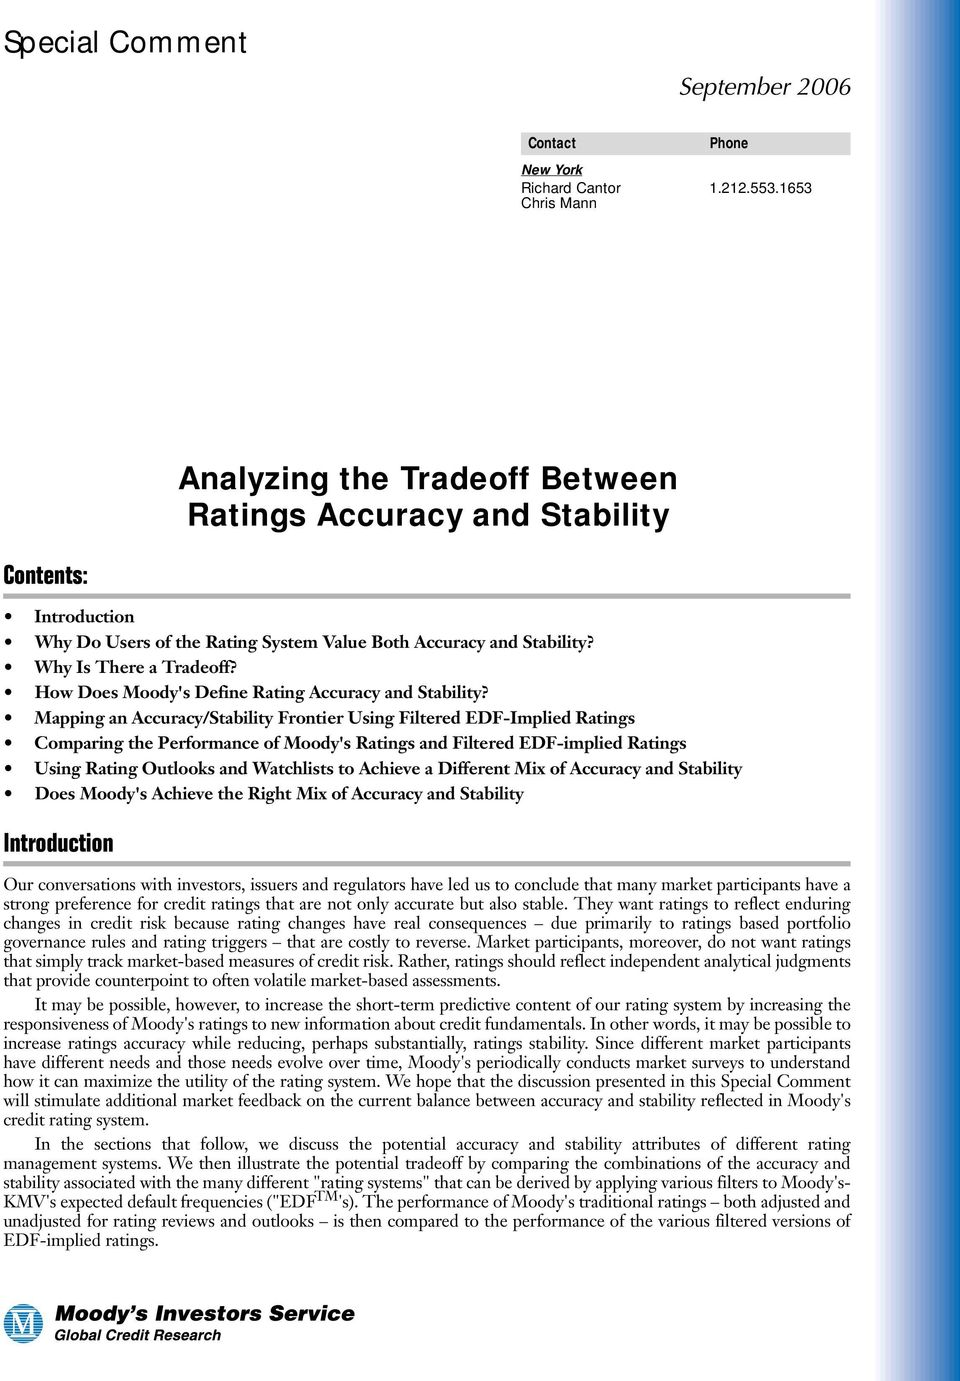 How Does Moody's Define Rating Accuracy and Stability?